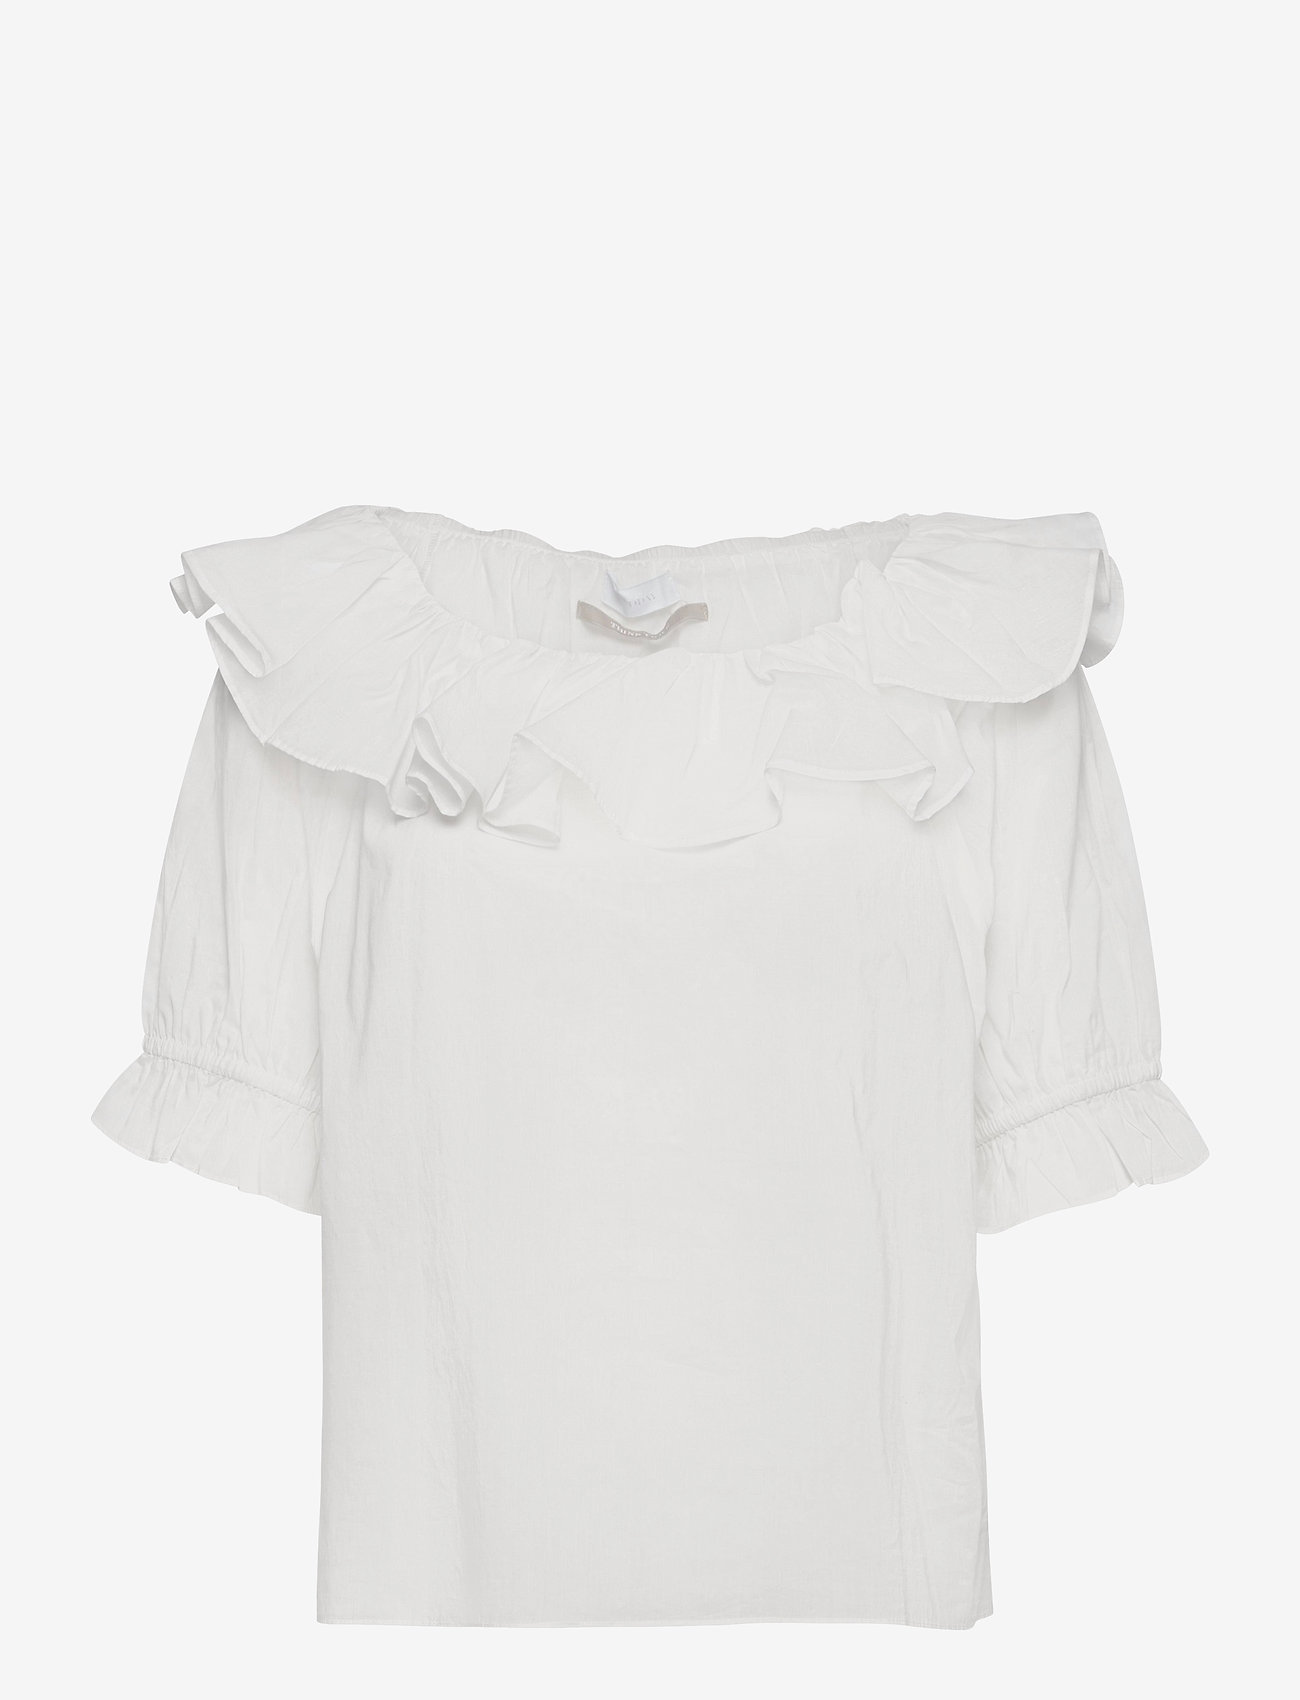 2NDDAY - 2ND Elon Thinktwice - short-sleeved blouses - bright white - 0